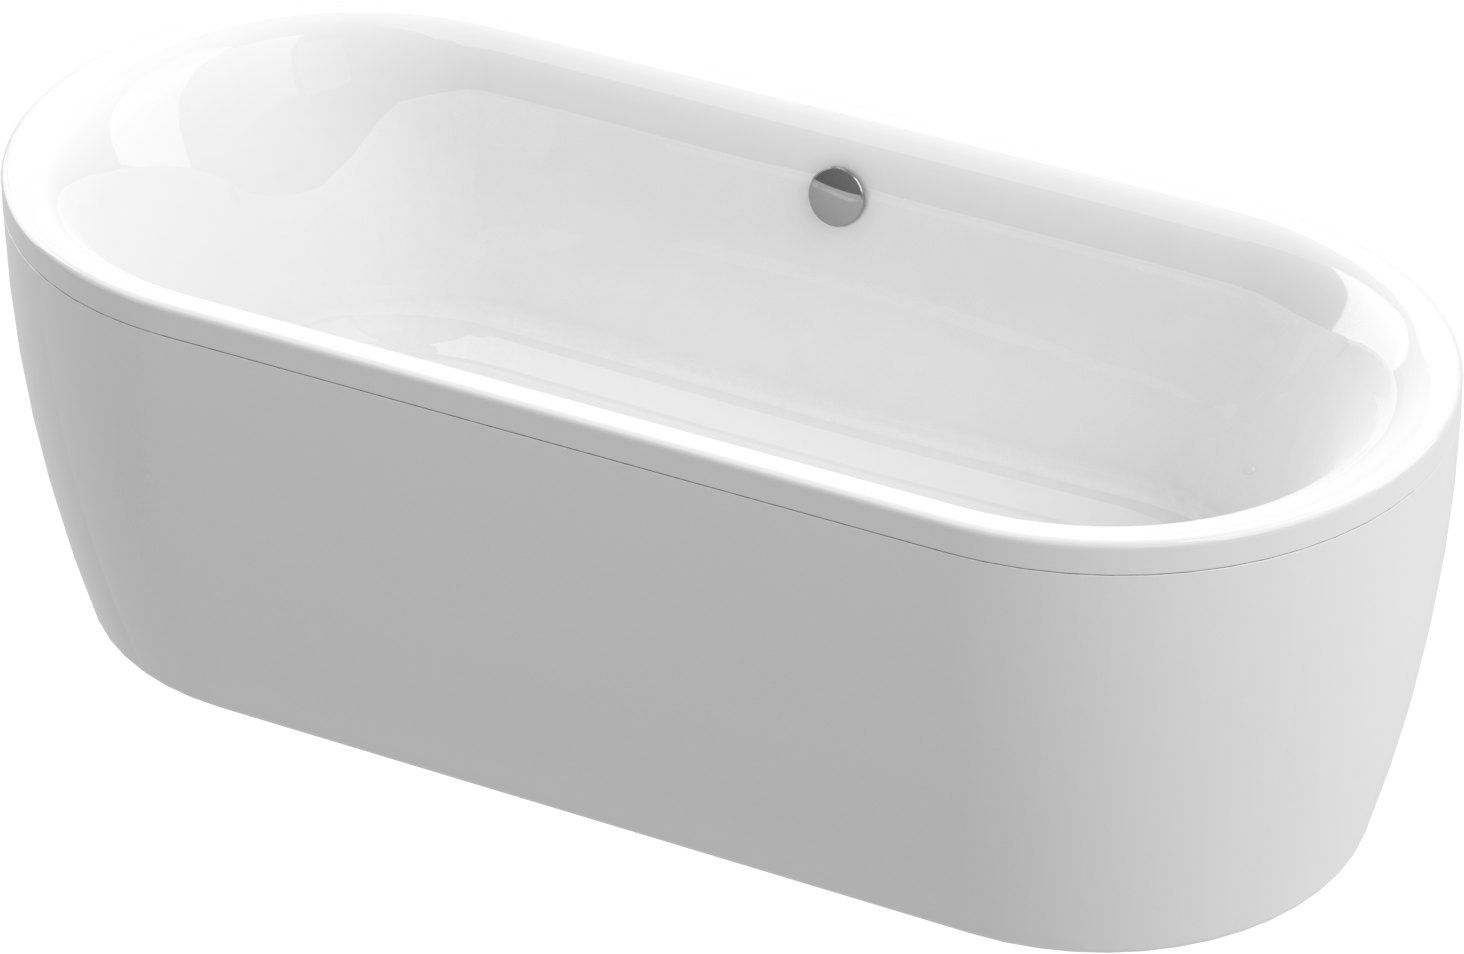 Badewanne Optimale Höhe Badewanen Metauro Central Aquaestil